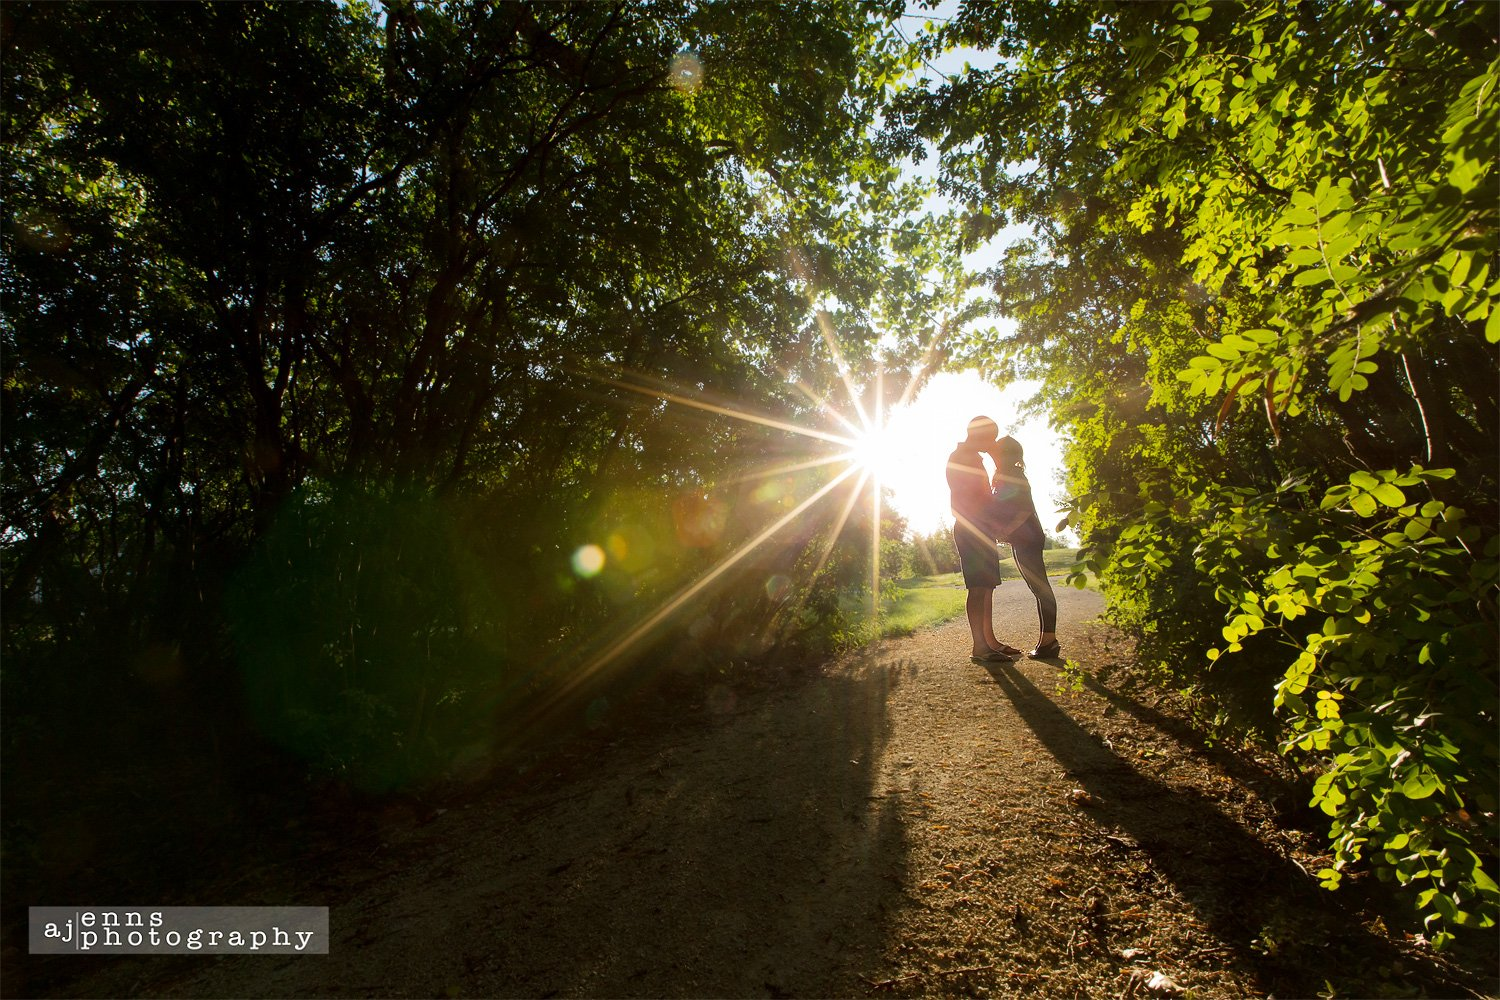 A special kiss during sunset under a canopy of trees